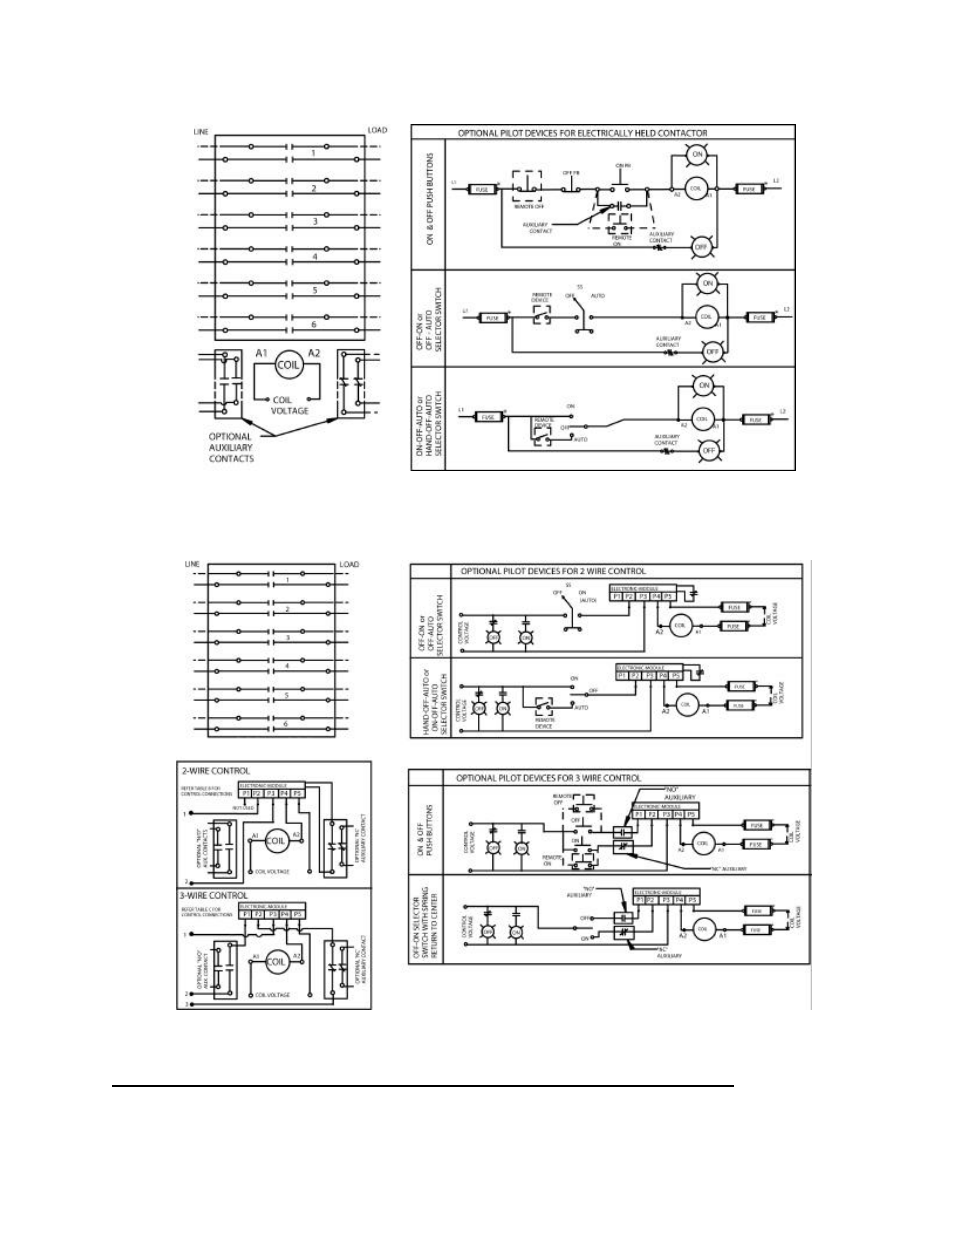 wiring diagrams lighting circuits house wiring diagrams for lighting circuits ge industrial solutions cr460 lighting contactor series